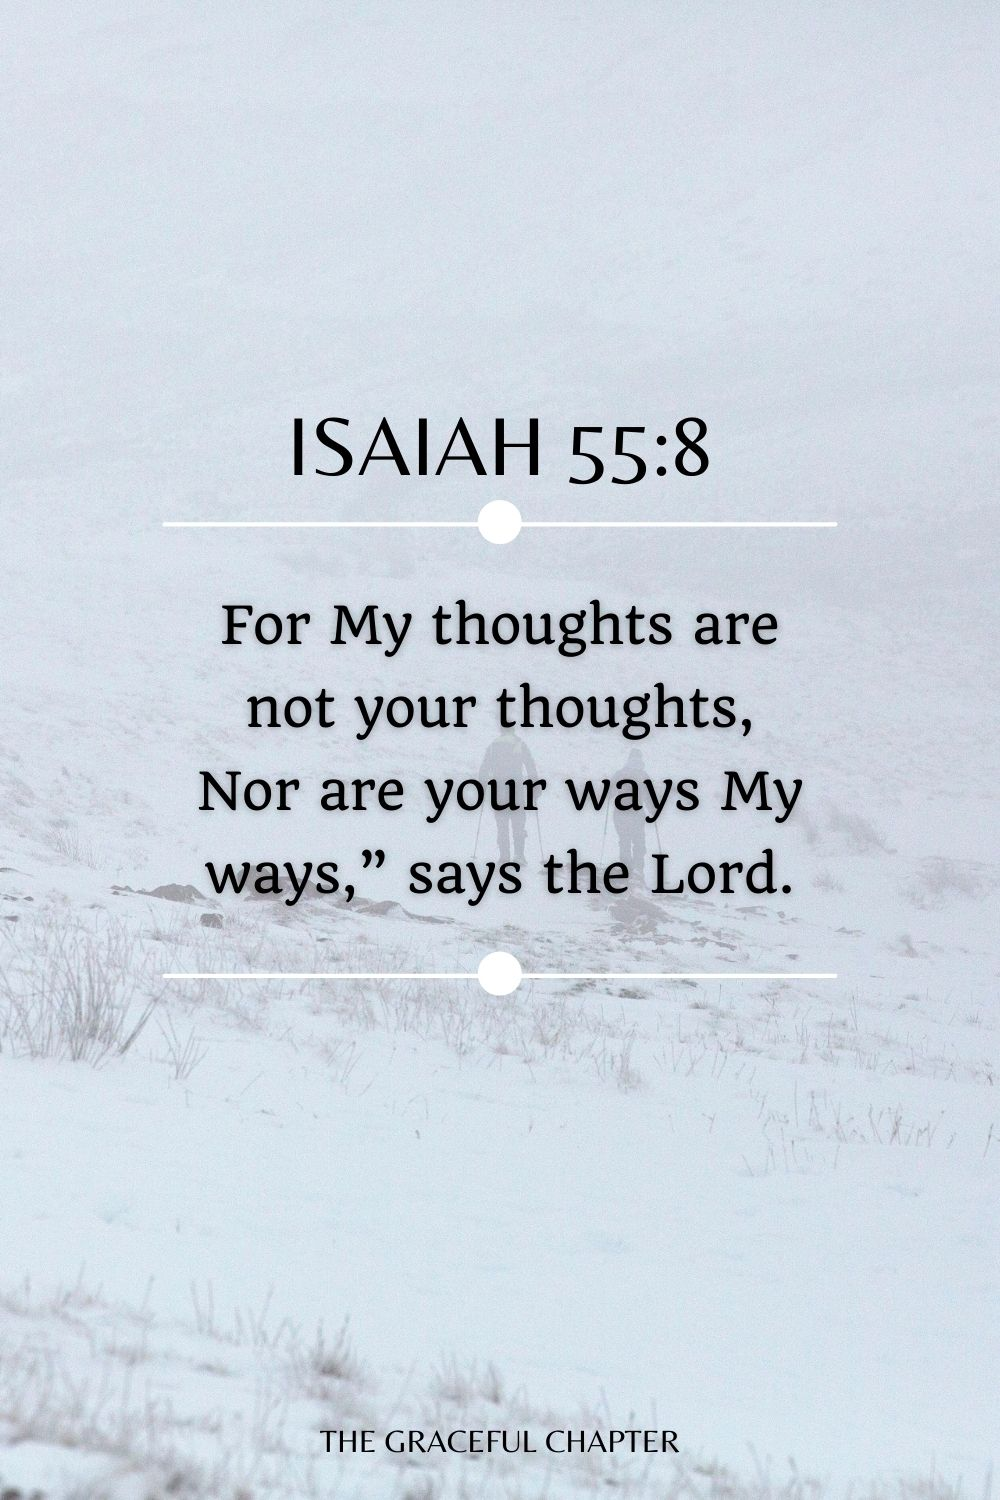 """For My thoughts are not your thoughts, Nor are your ways My ways,"""" says the Lord. Isaiah 55:8"""